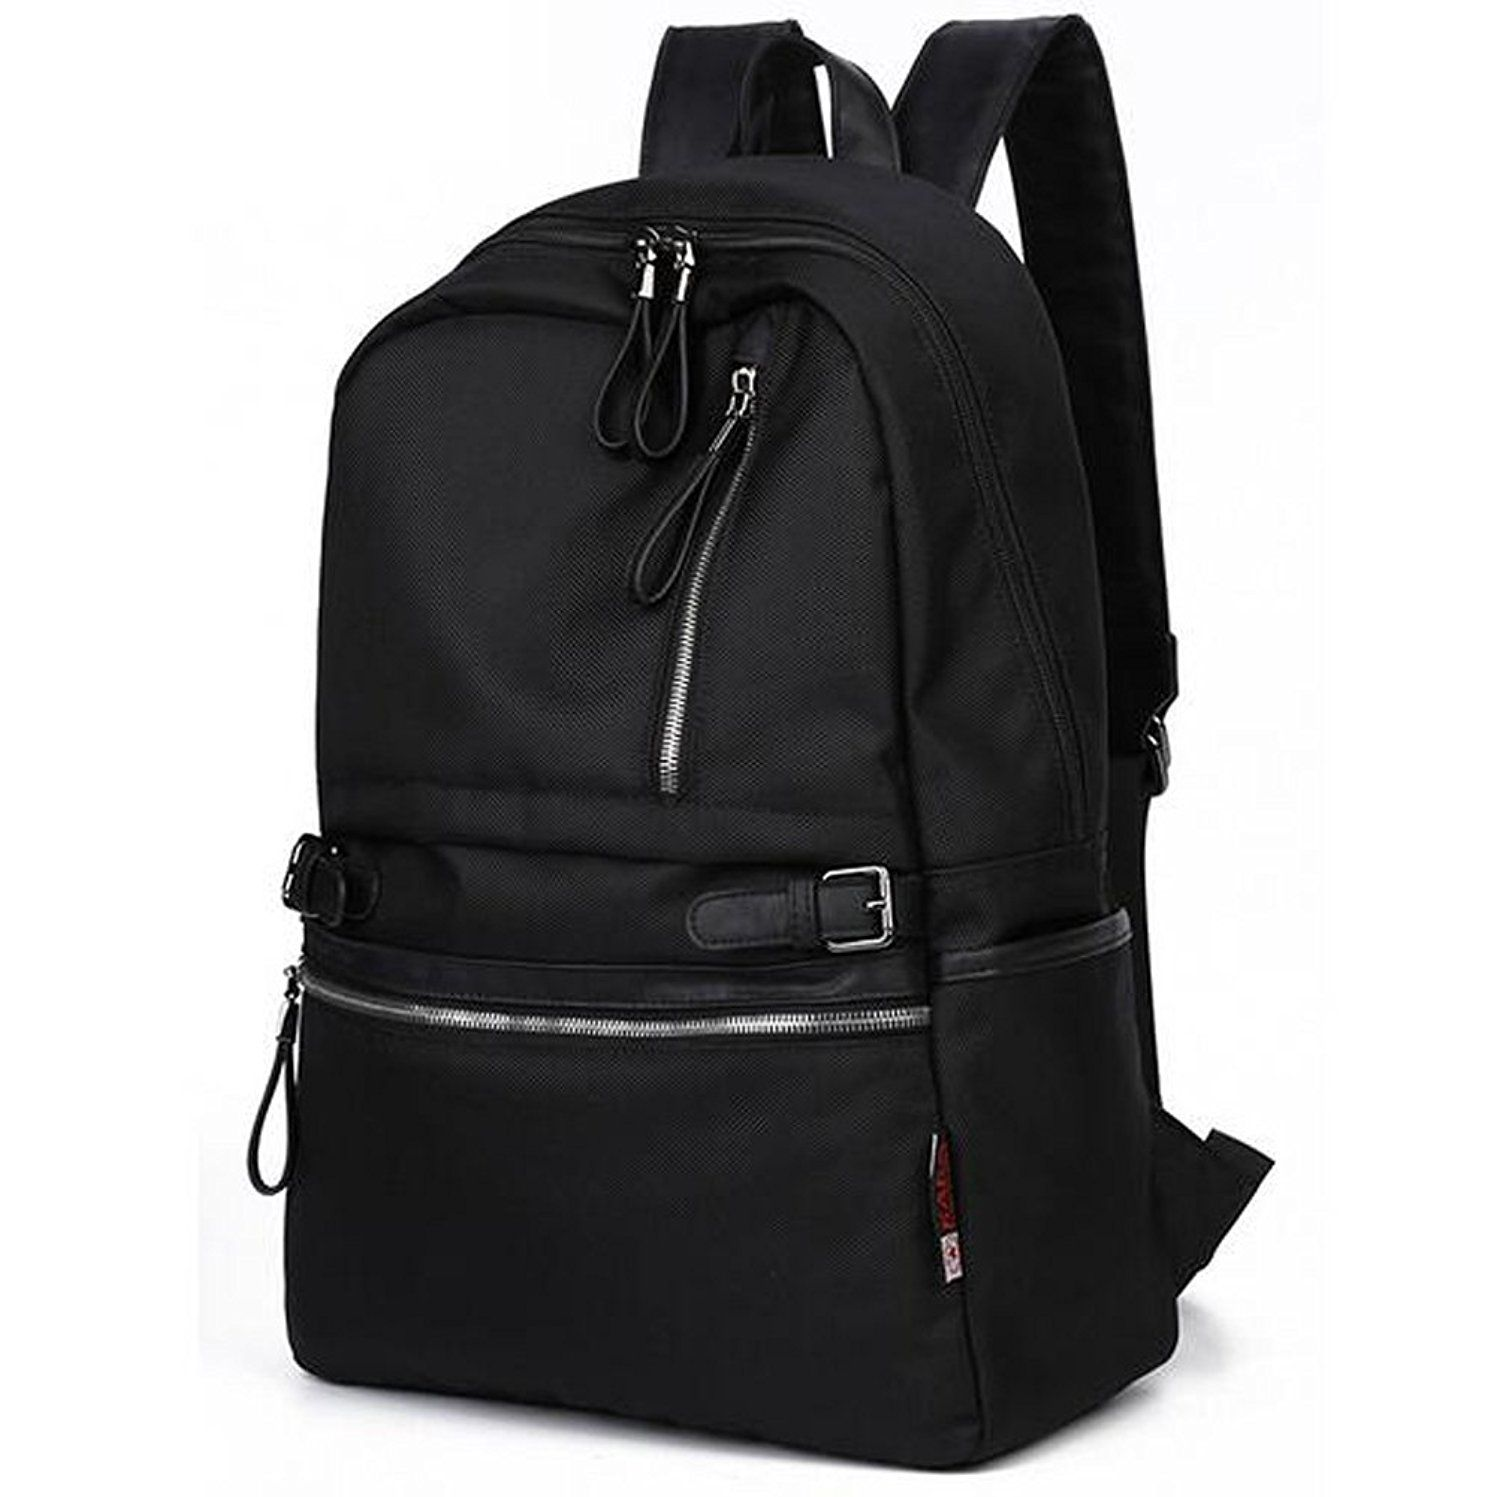 Travel Rucksack Casual Waterproof Backpacks School Travel Rucksack For Men Women